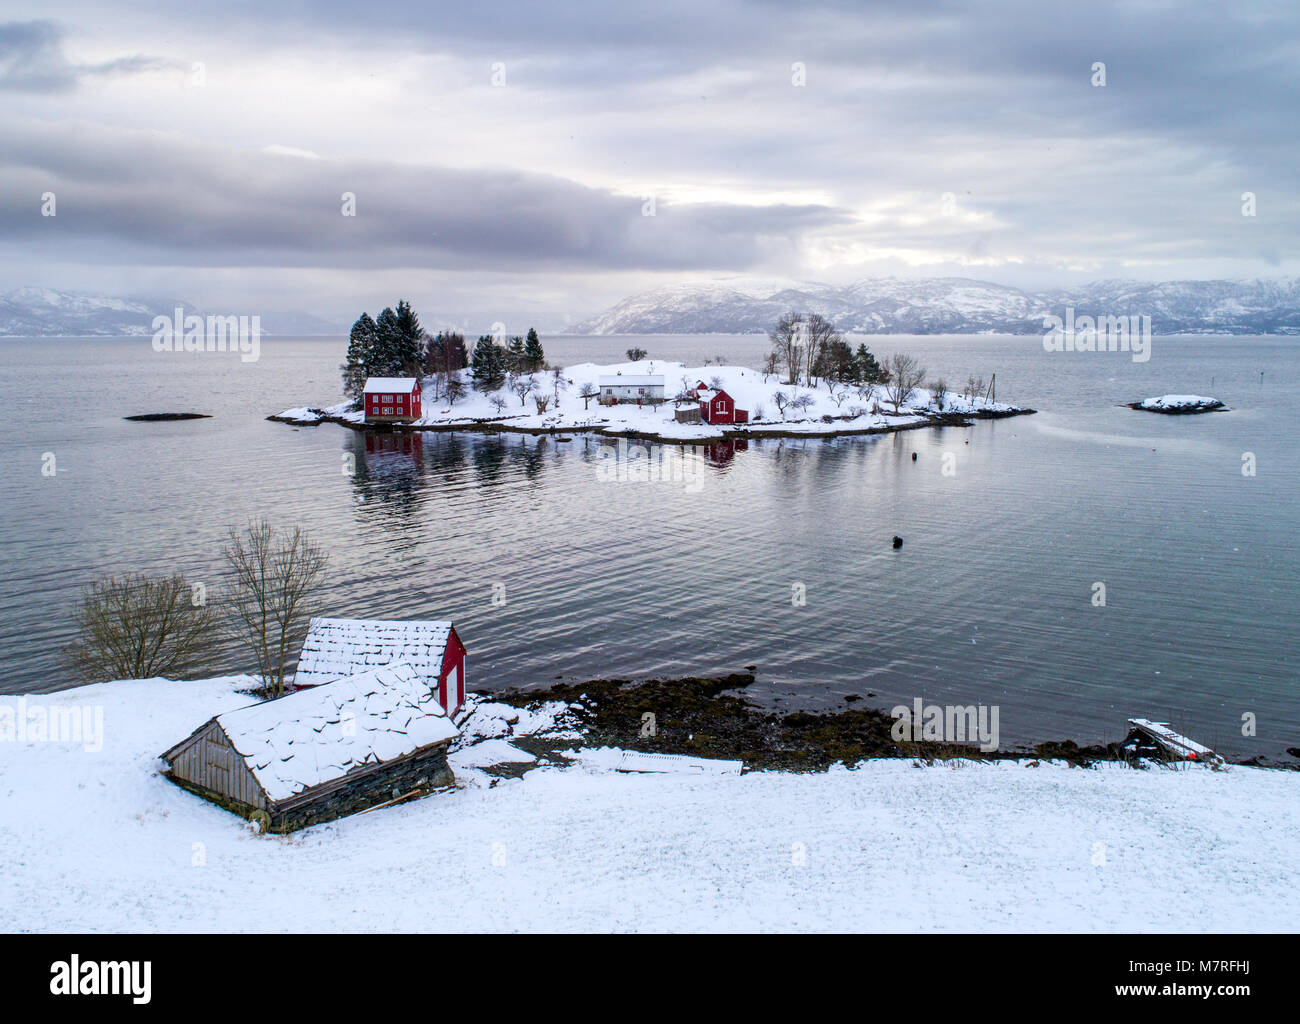 Winter on a small farm on a small island in the Norwegian fjord, Hardangerfjorden. - Stock Image